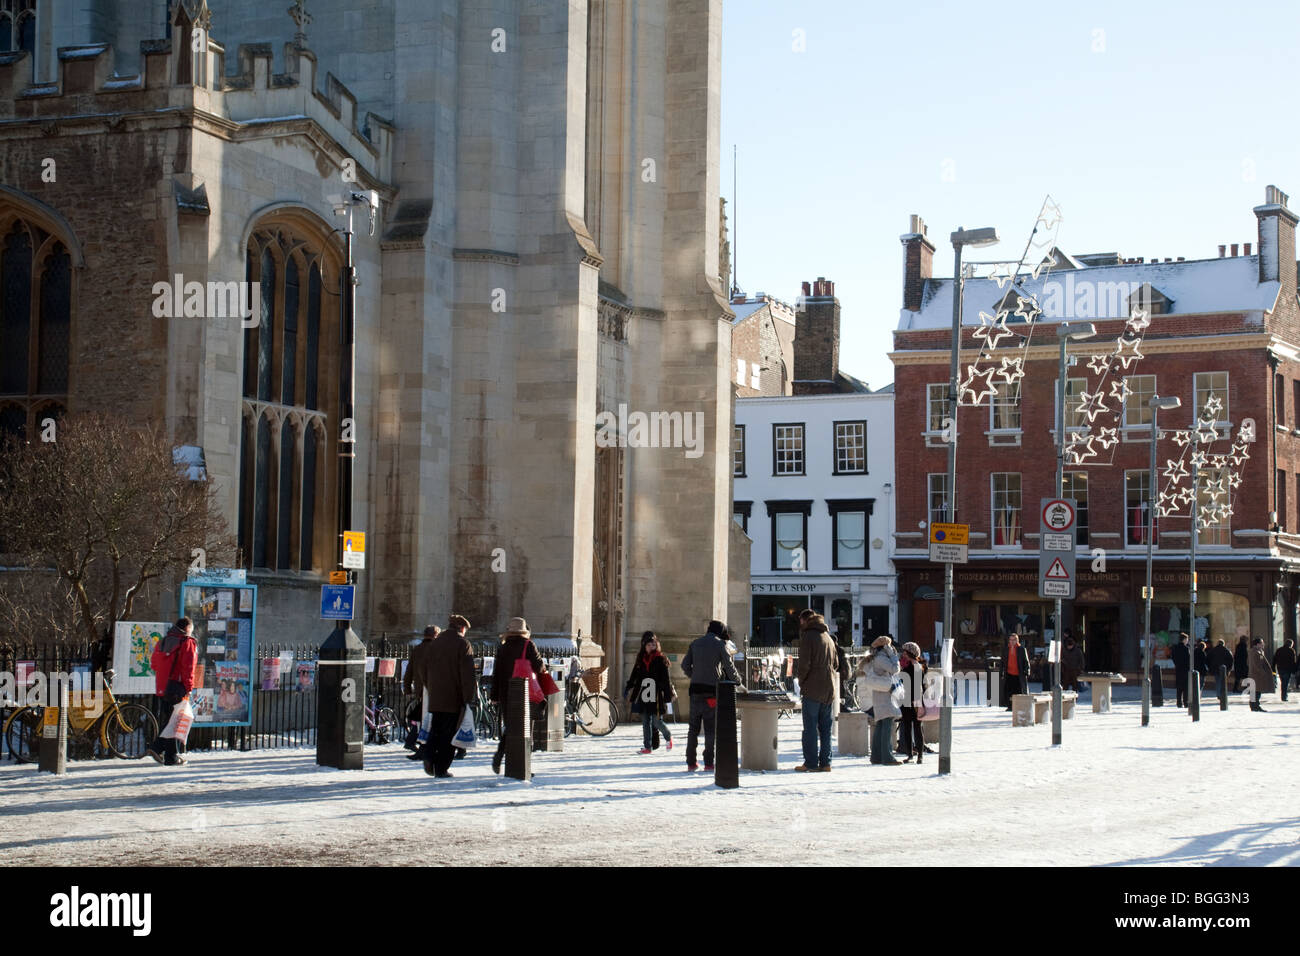 People in the winter snow in front of Great St Marys Church, Kings Parade, Cambridge, UK - Stock Image